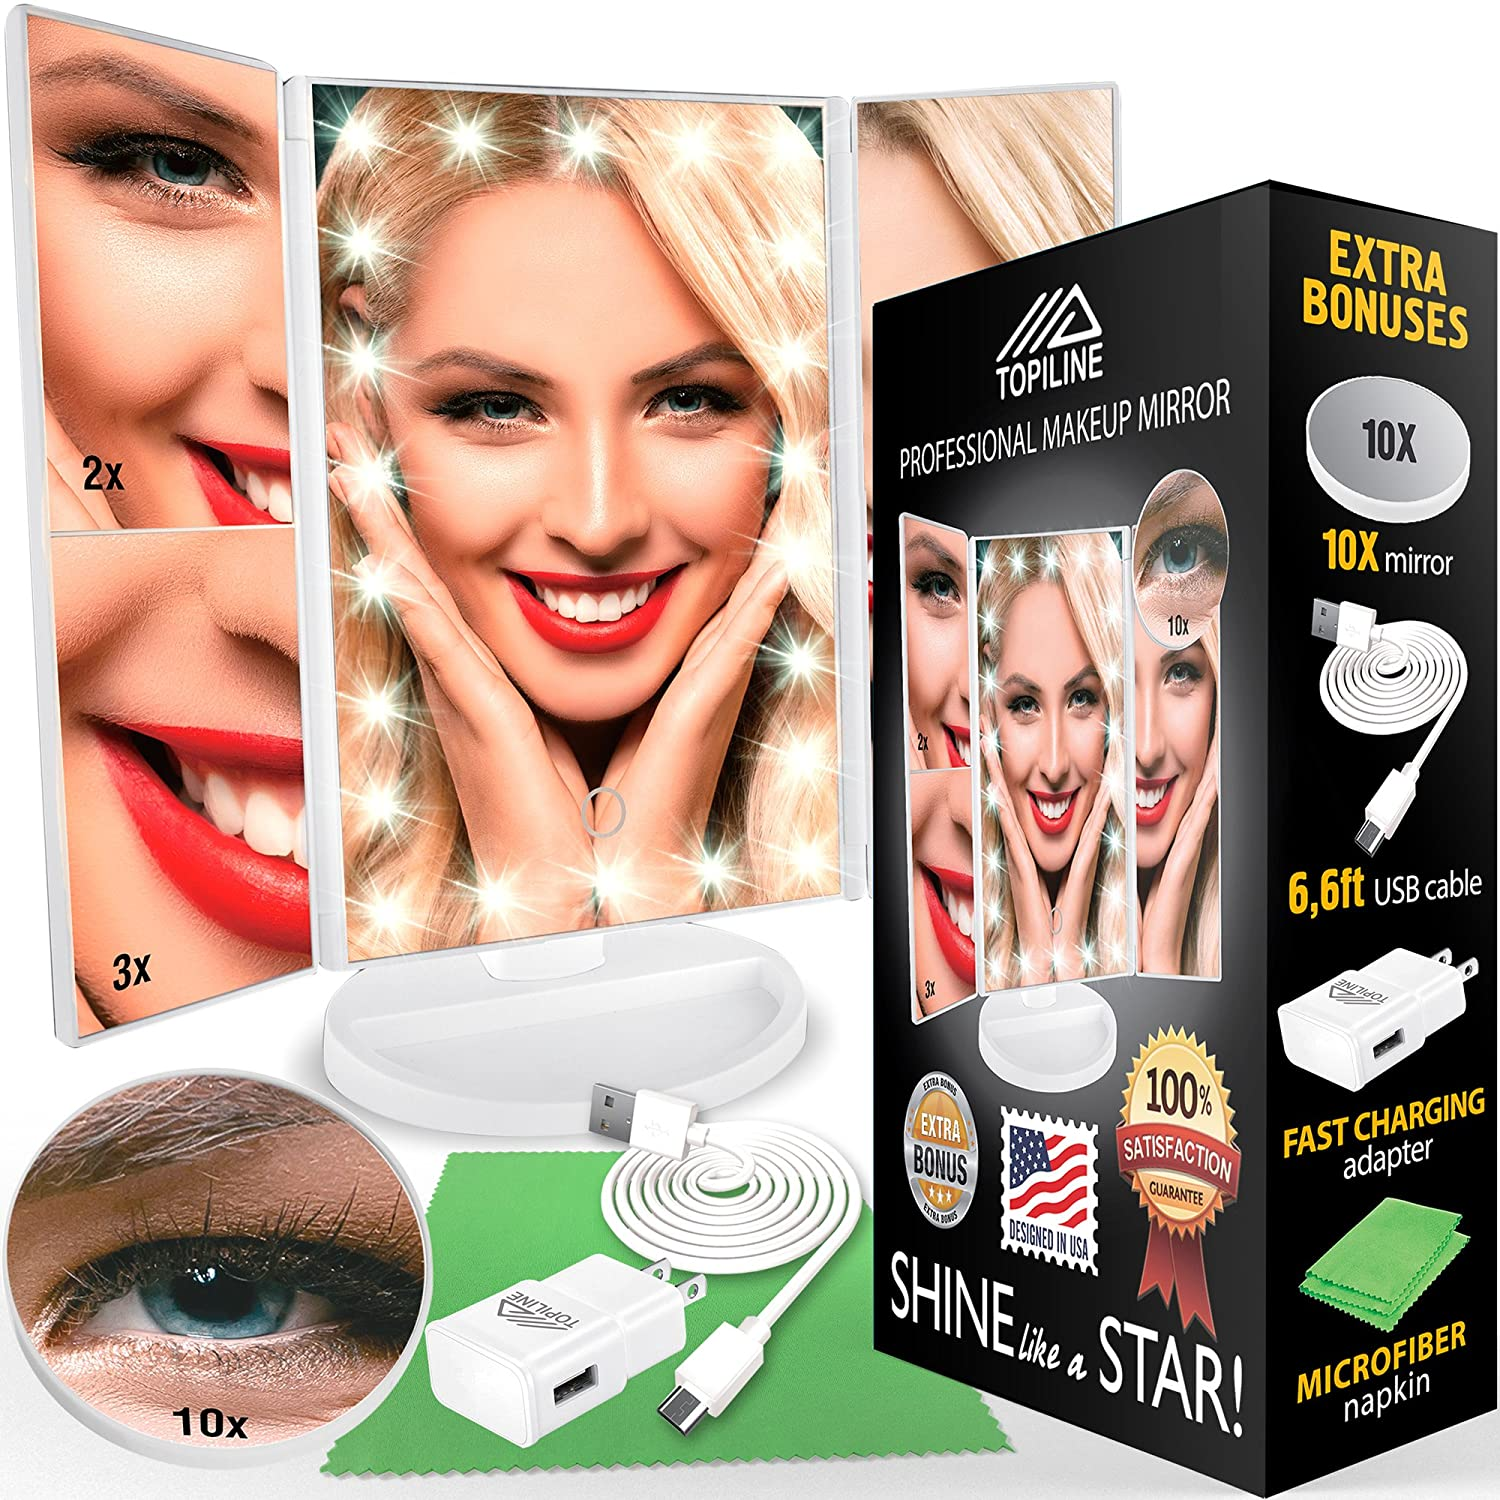 Lighted Makeup Mirror with Lights - Makeup Vanity Mirror with Lights and Magnification - Make up Mirrors Lighted Magnifying - Portable Trifold Cosmetic Mirror with Long 6.6ft USB Cable and Charger TOPILINE